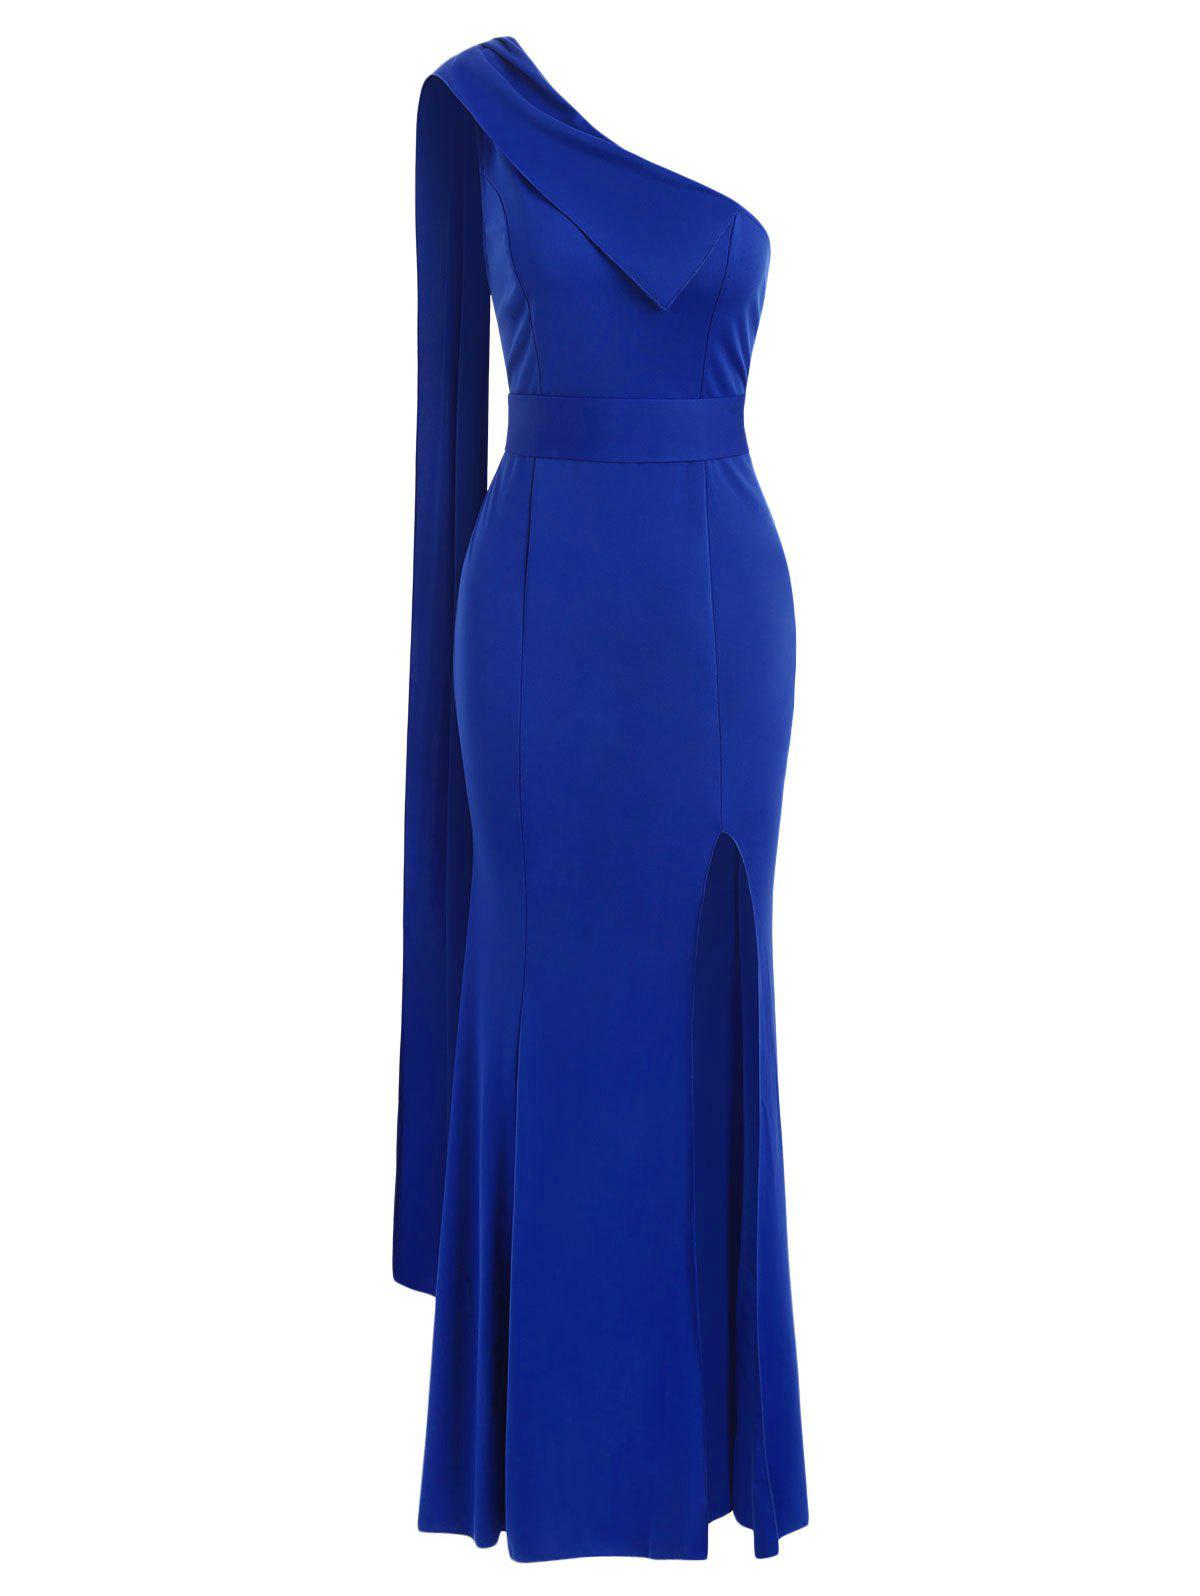 One Shoulder Slit Evening Mermaid Dress - BLUE S